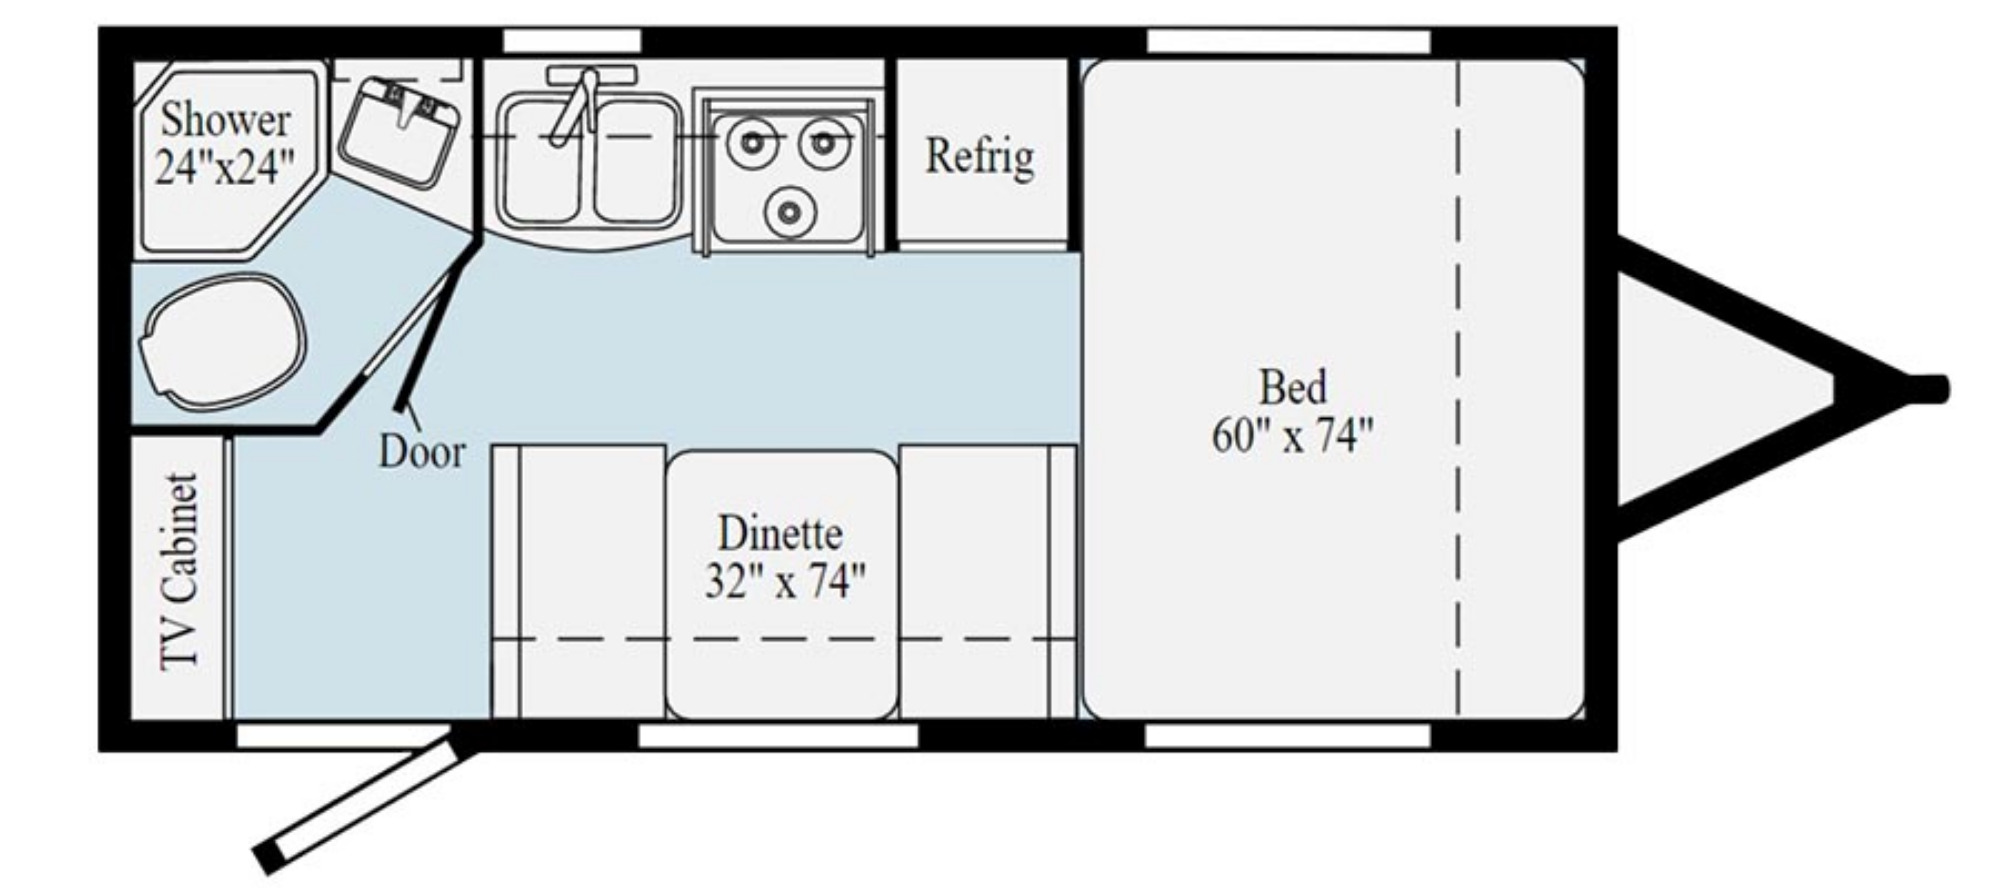 View Floor Plan for 2021 WINNEBAGO MICRO MINNIE 1708FB